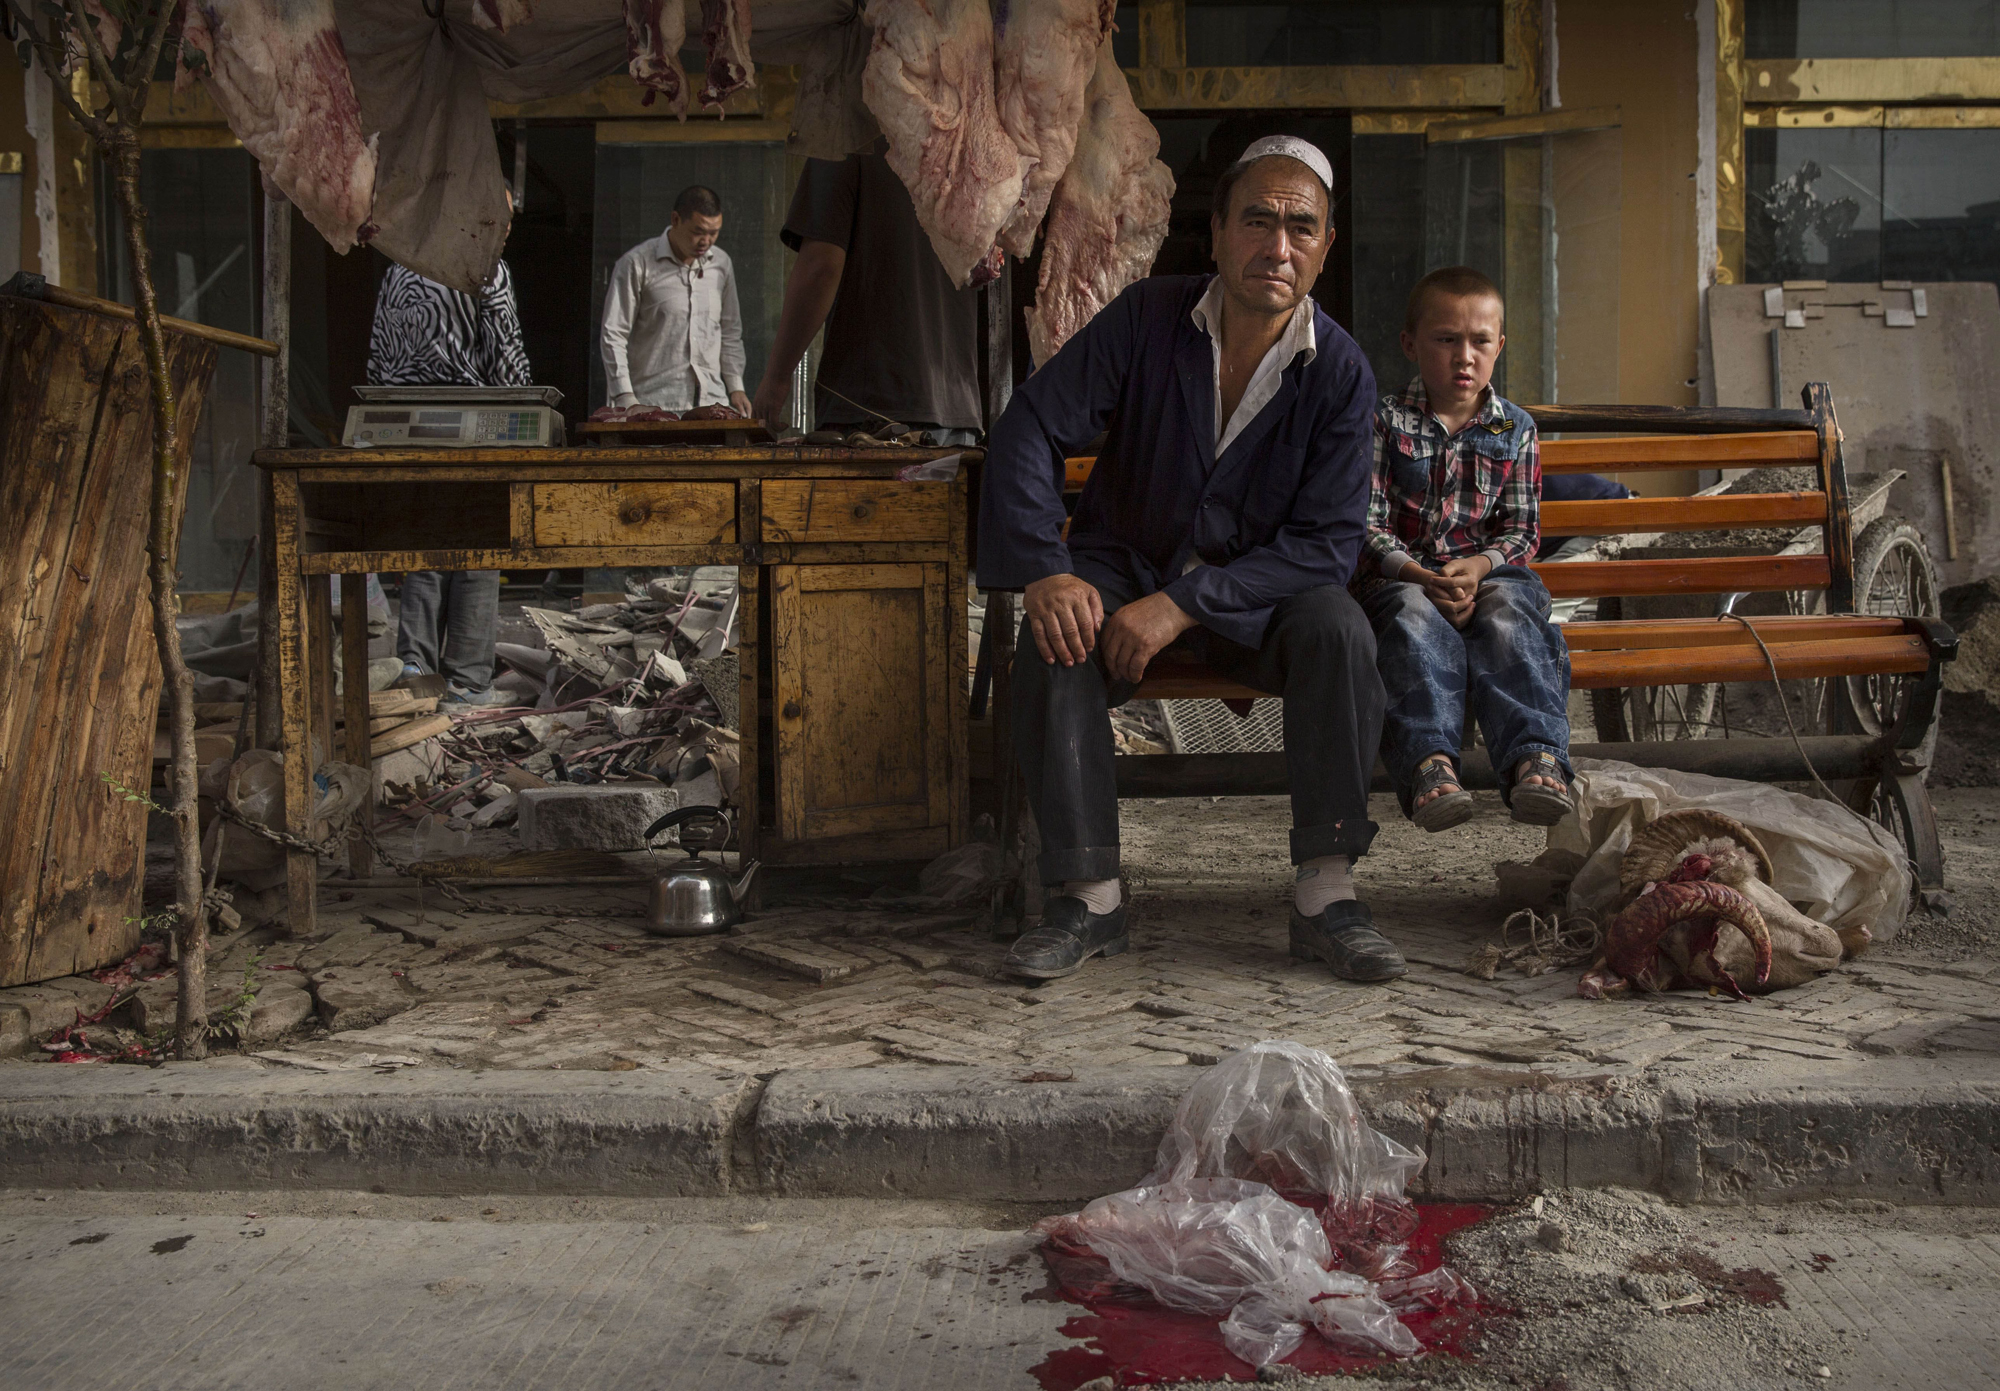 A Uighur butcher and his son wait for customers before the Eid holiday on July 28, 2014 in old Kashgar.